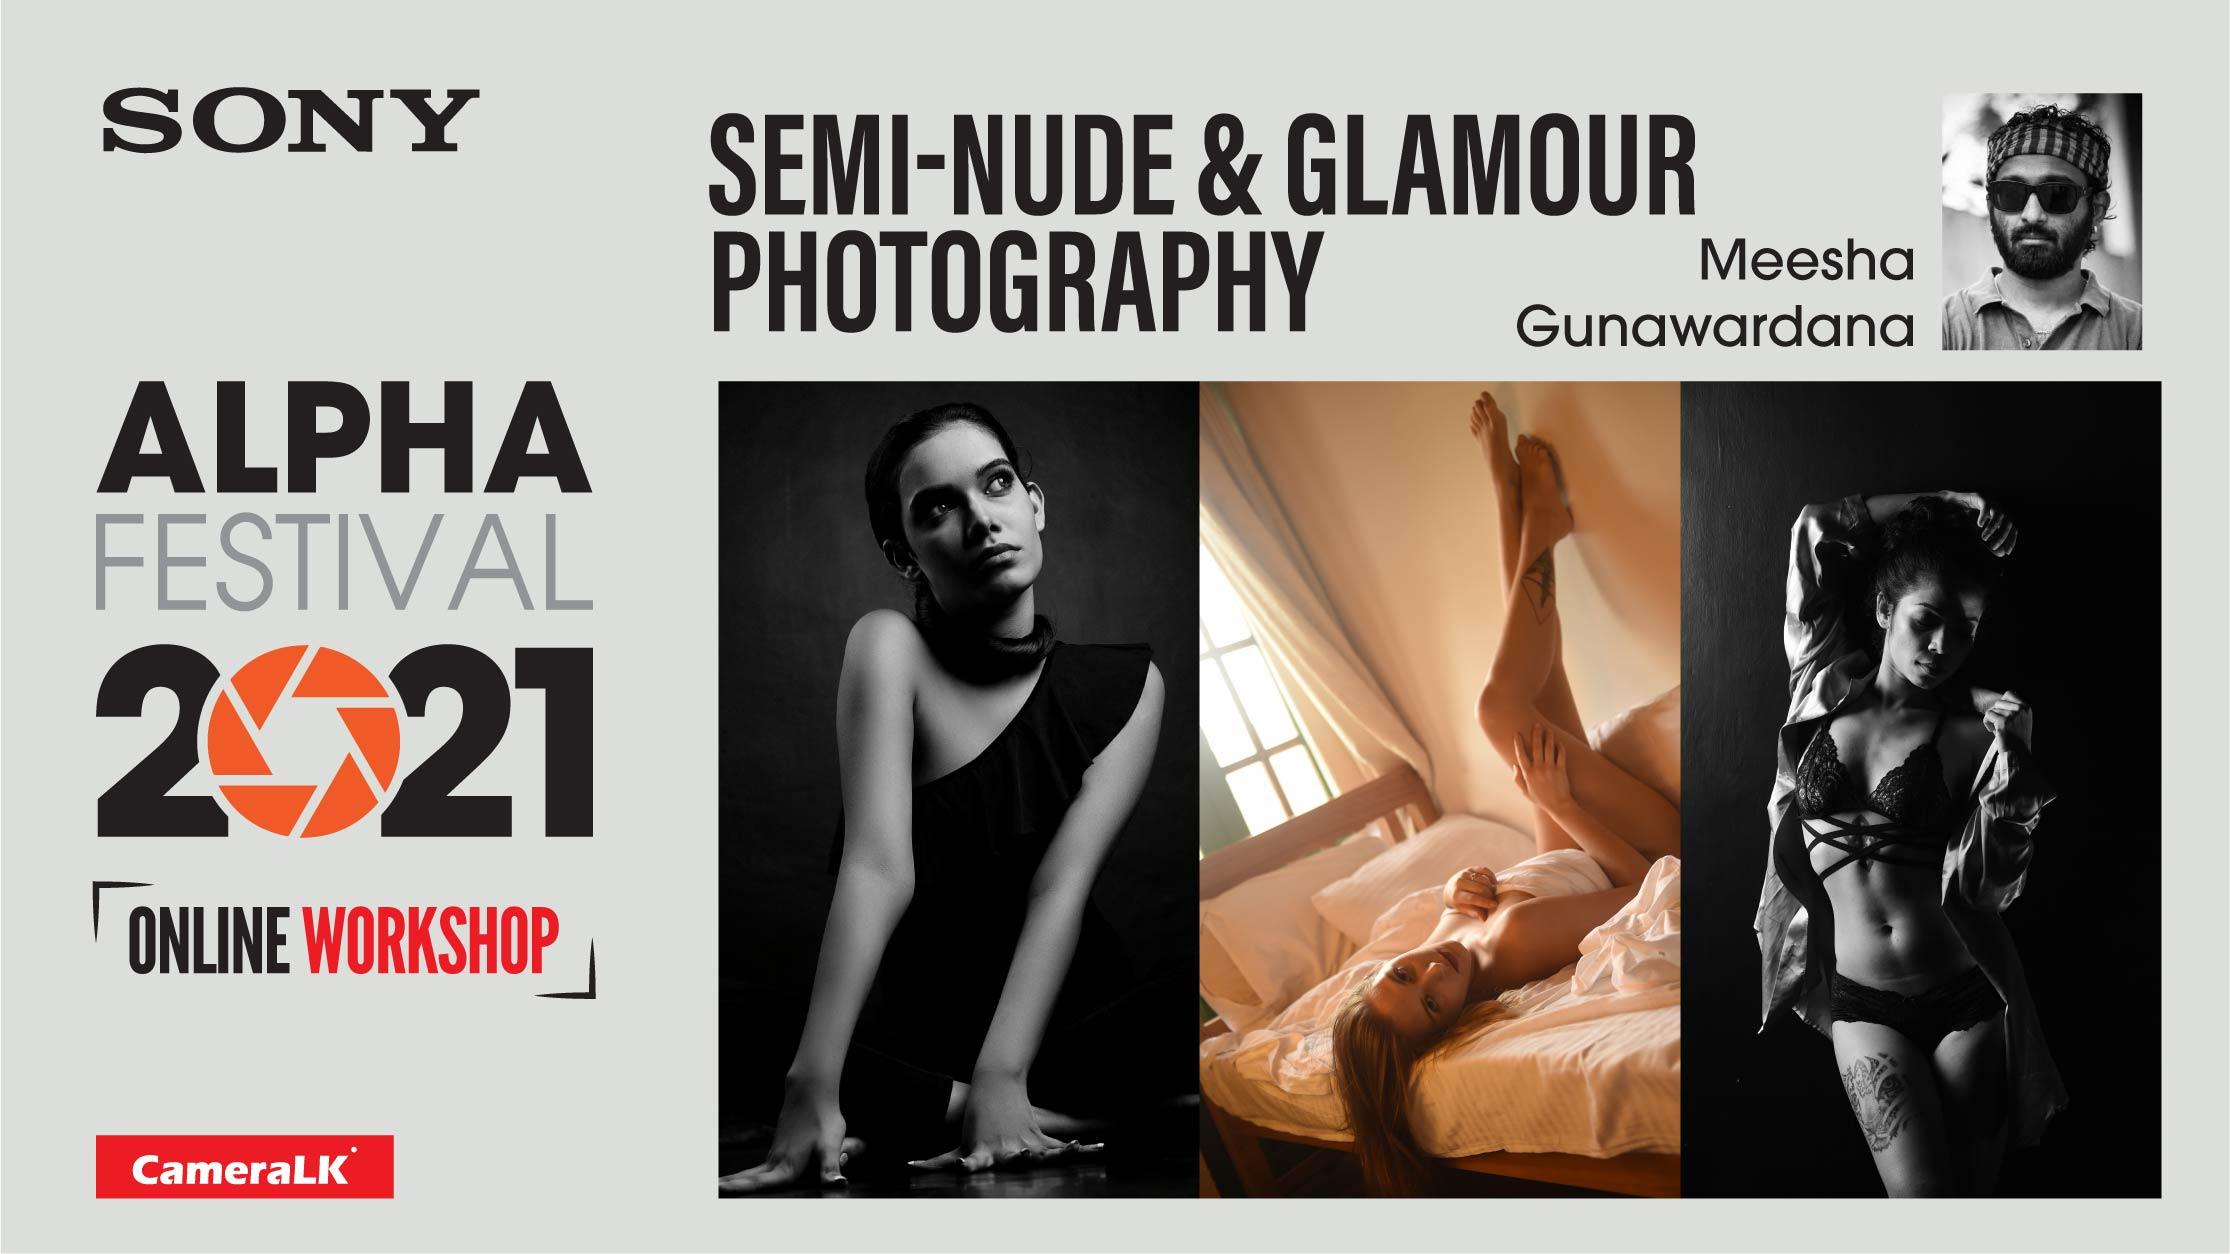 Semi-nude & Glamour Photography Workshop By Meesha Gunawardana